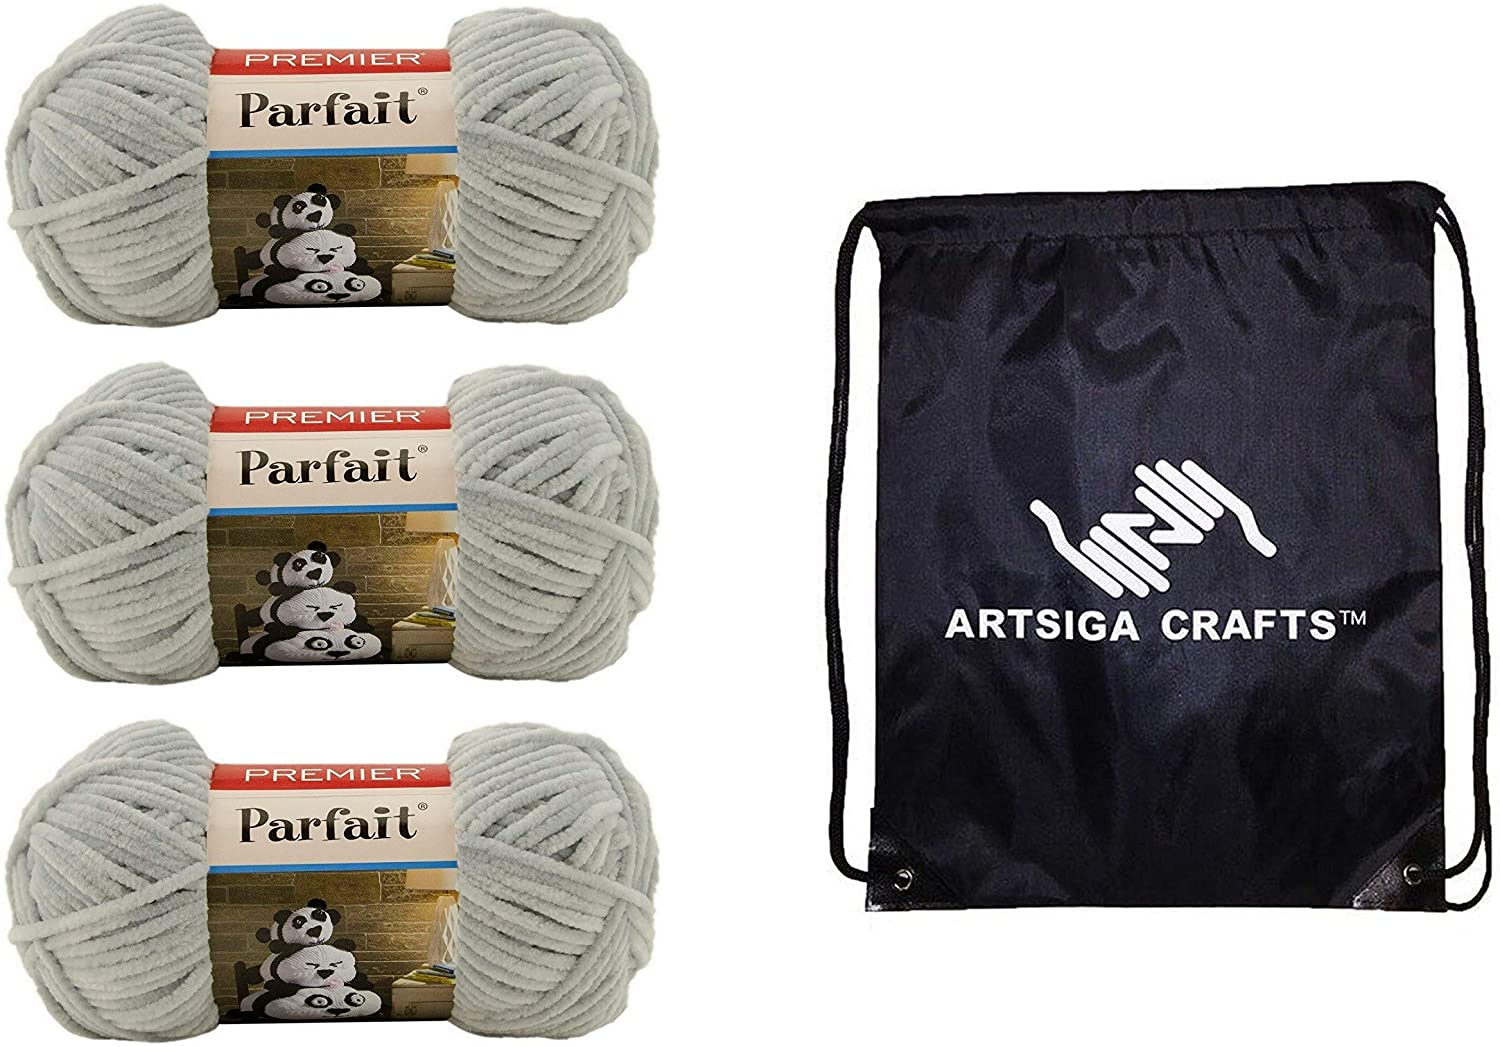 Premier Knitting Yarn Parfait Solid Pale Gray 3-Skein Factory Pack (Same Dye Lot) 30-26 Bundle with 1 Artsiga Crafts Project Bag